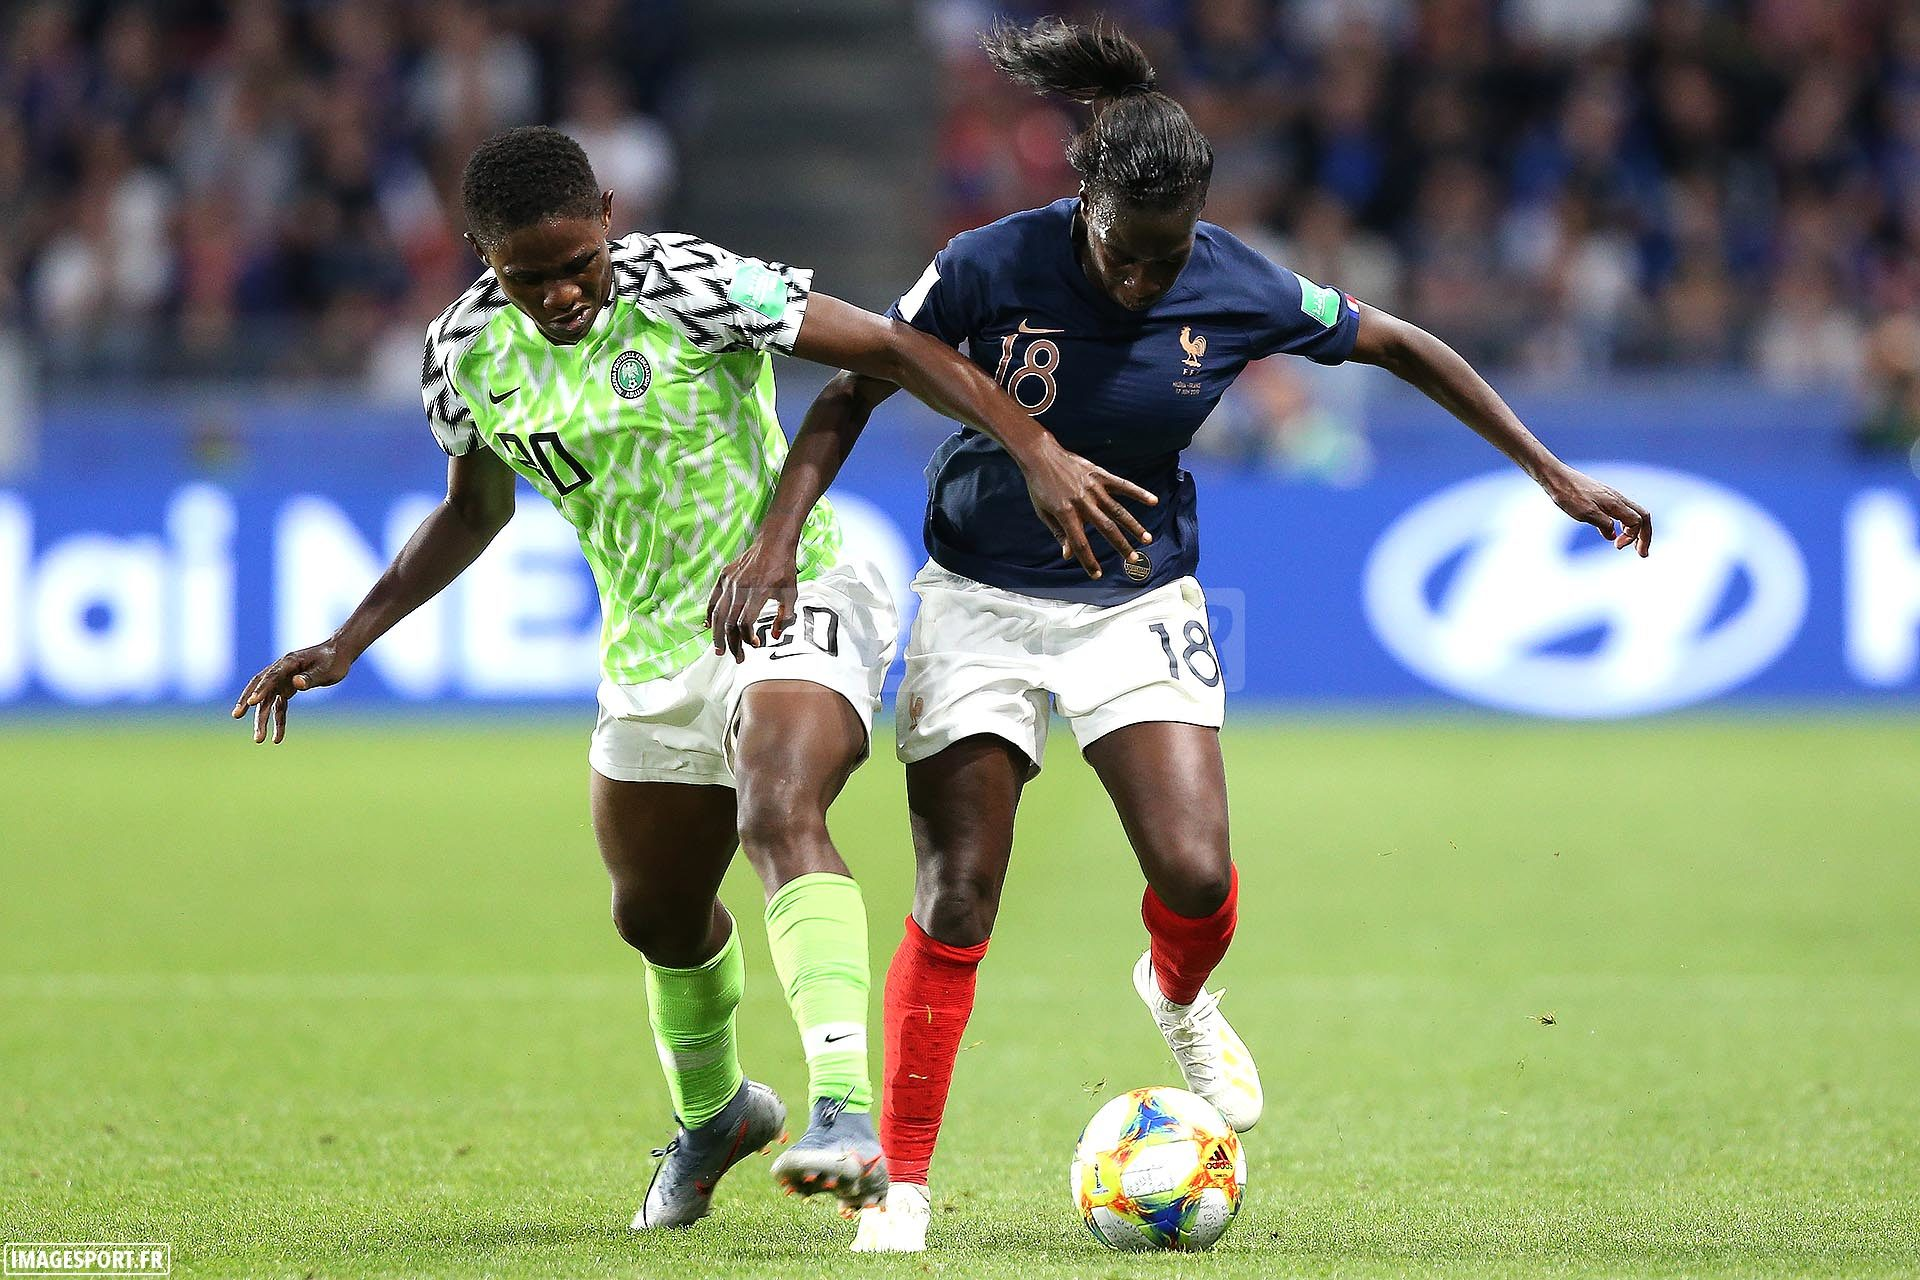 coupe-du-monde-19-nigeria-france_18